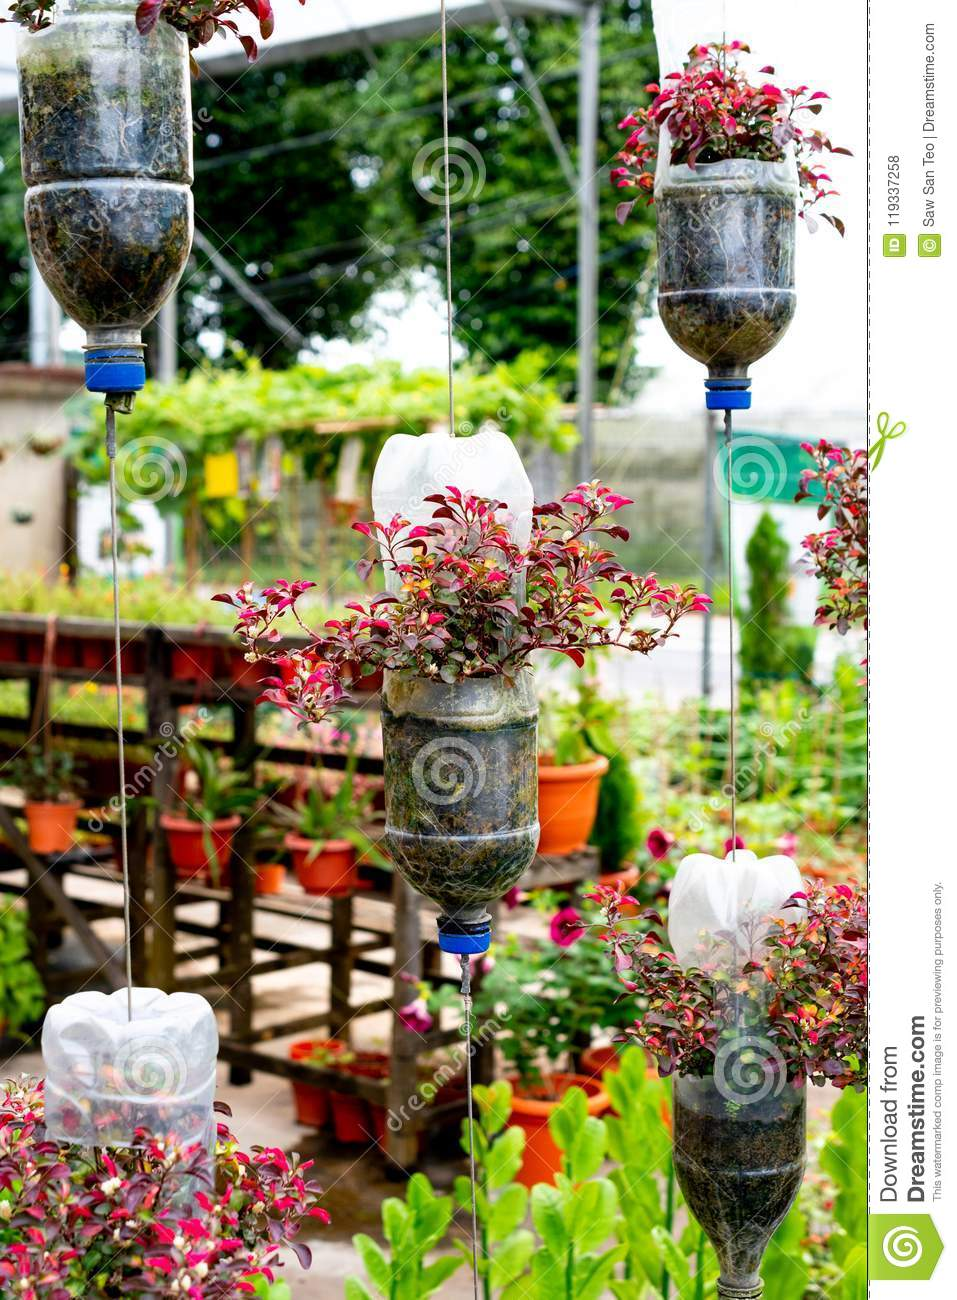 Recycle Plastic Bottles As Flower Pots Stock Photo Image Of Conservation Hanging 119337258